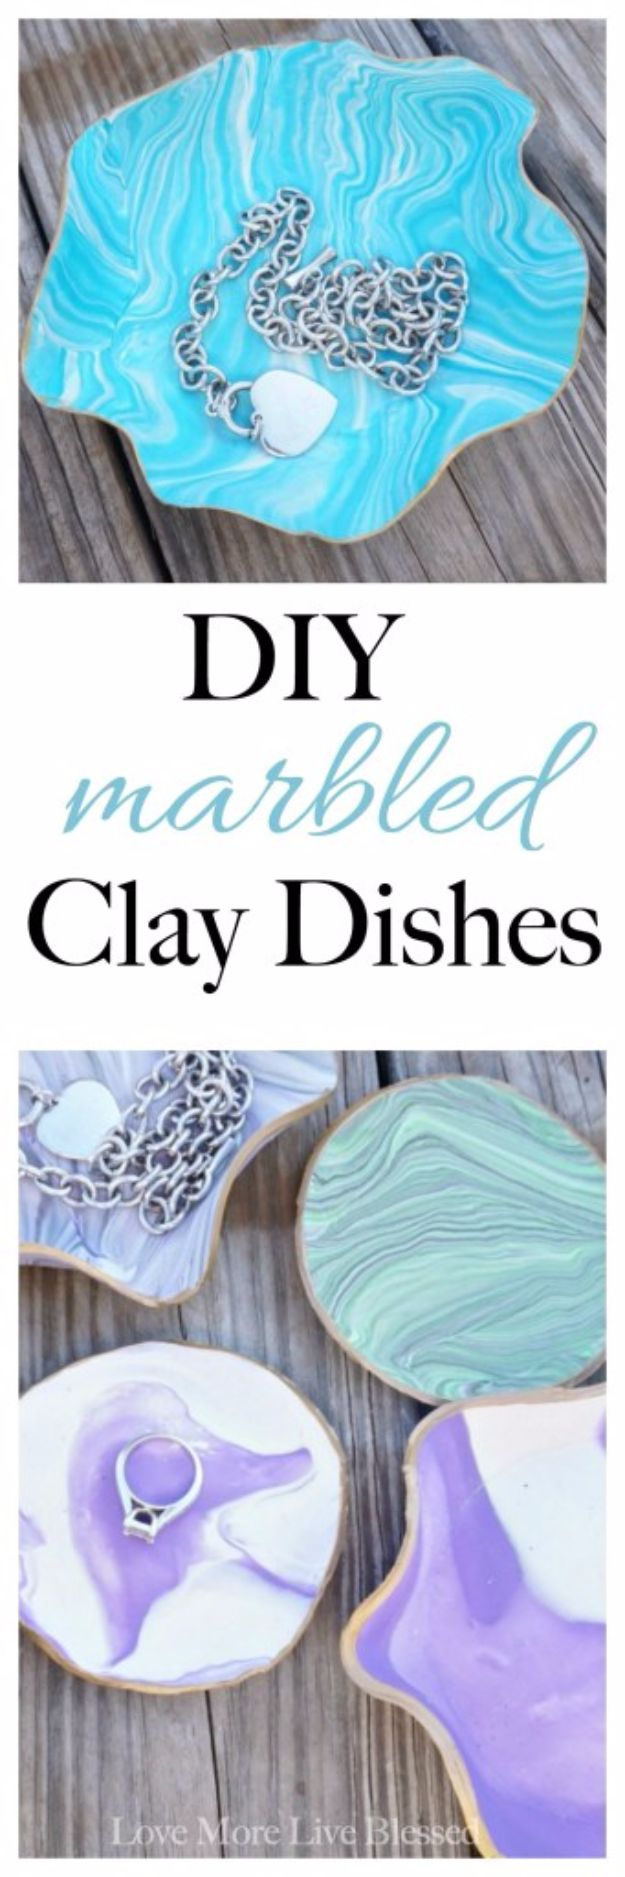 DIY Valentines Day Gifts for Her - DIY Marbled Clay Dishes - Cool and Easy Things To Make for Your Wife, Girlfriend, Fiance - Creative and Cheap Do It Yourself Projects to Give Your Girl - Ladies Love These Ideas for Bath, Yard, Home and Kitchen, Outdoors - Make, Don't Buy Your Valentine